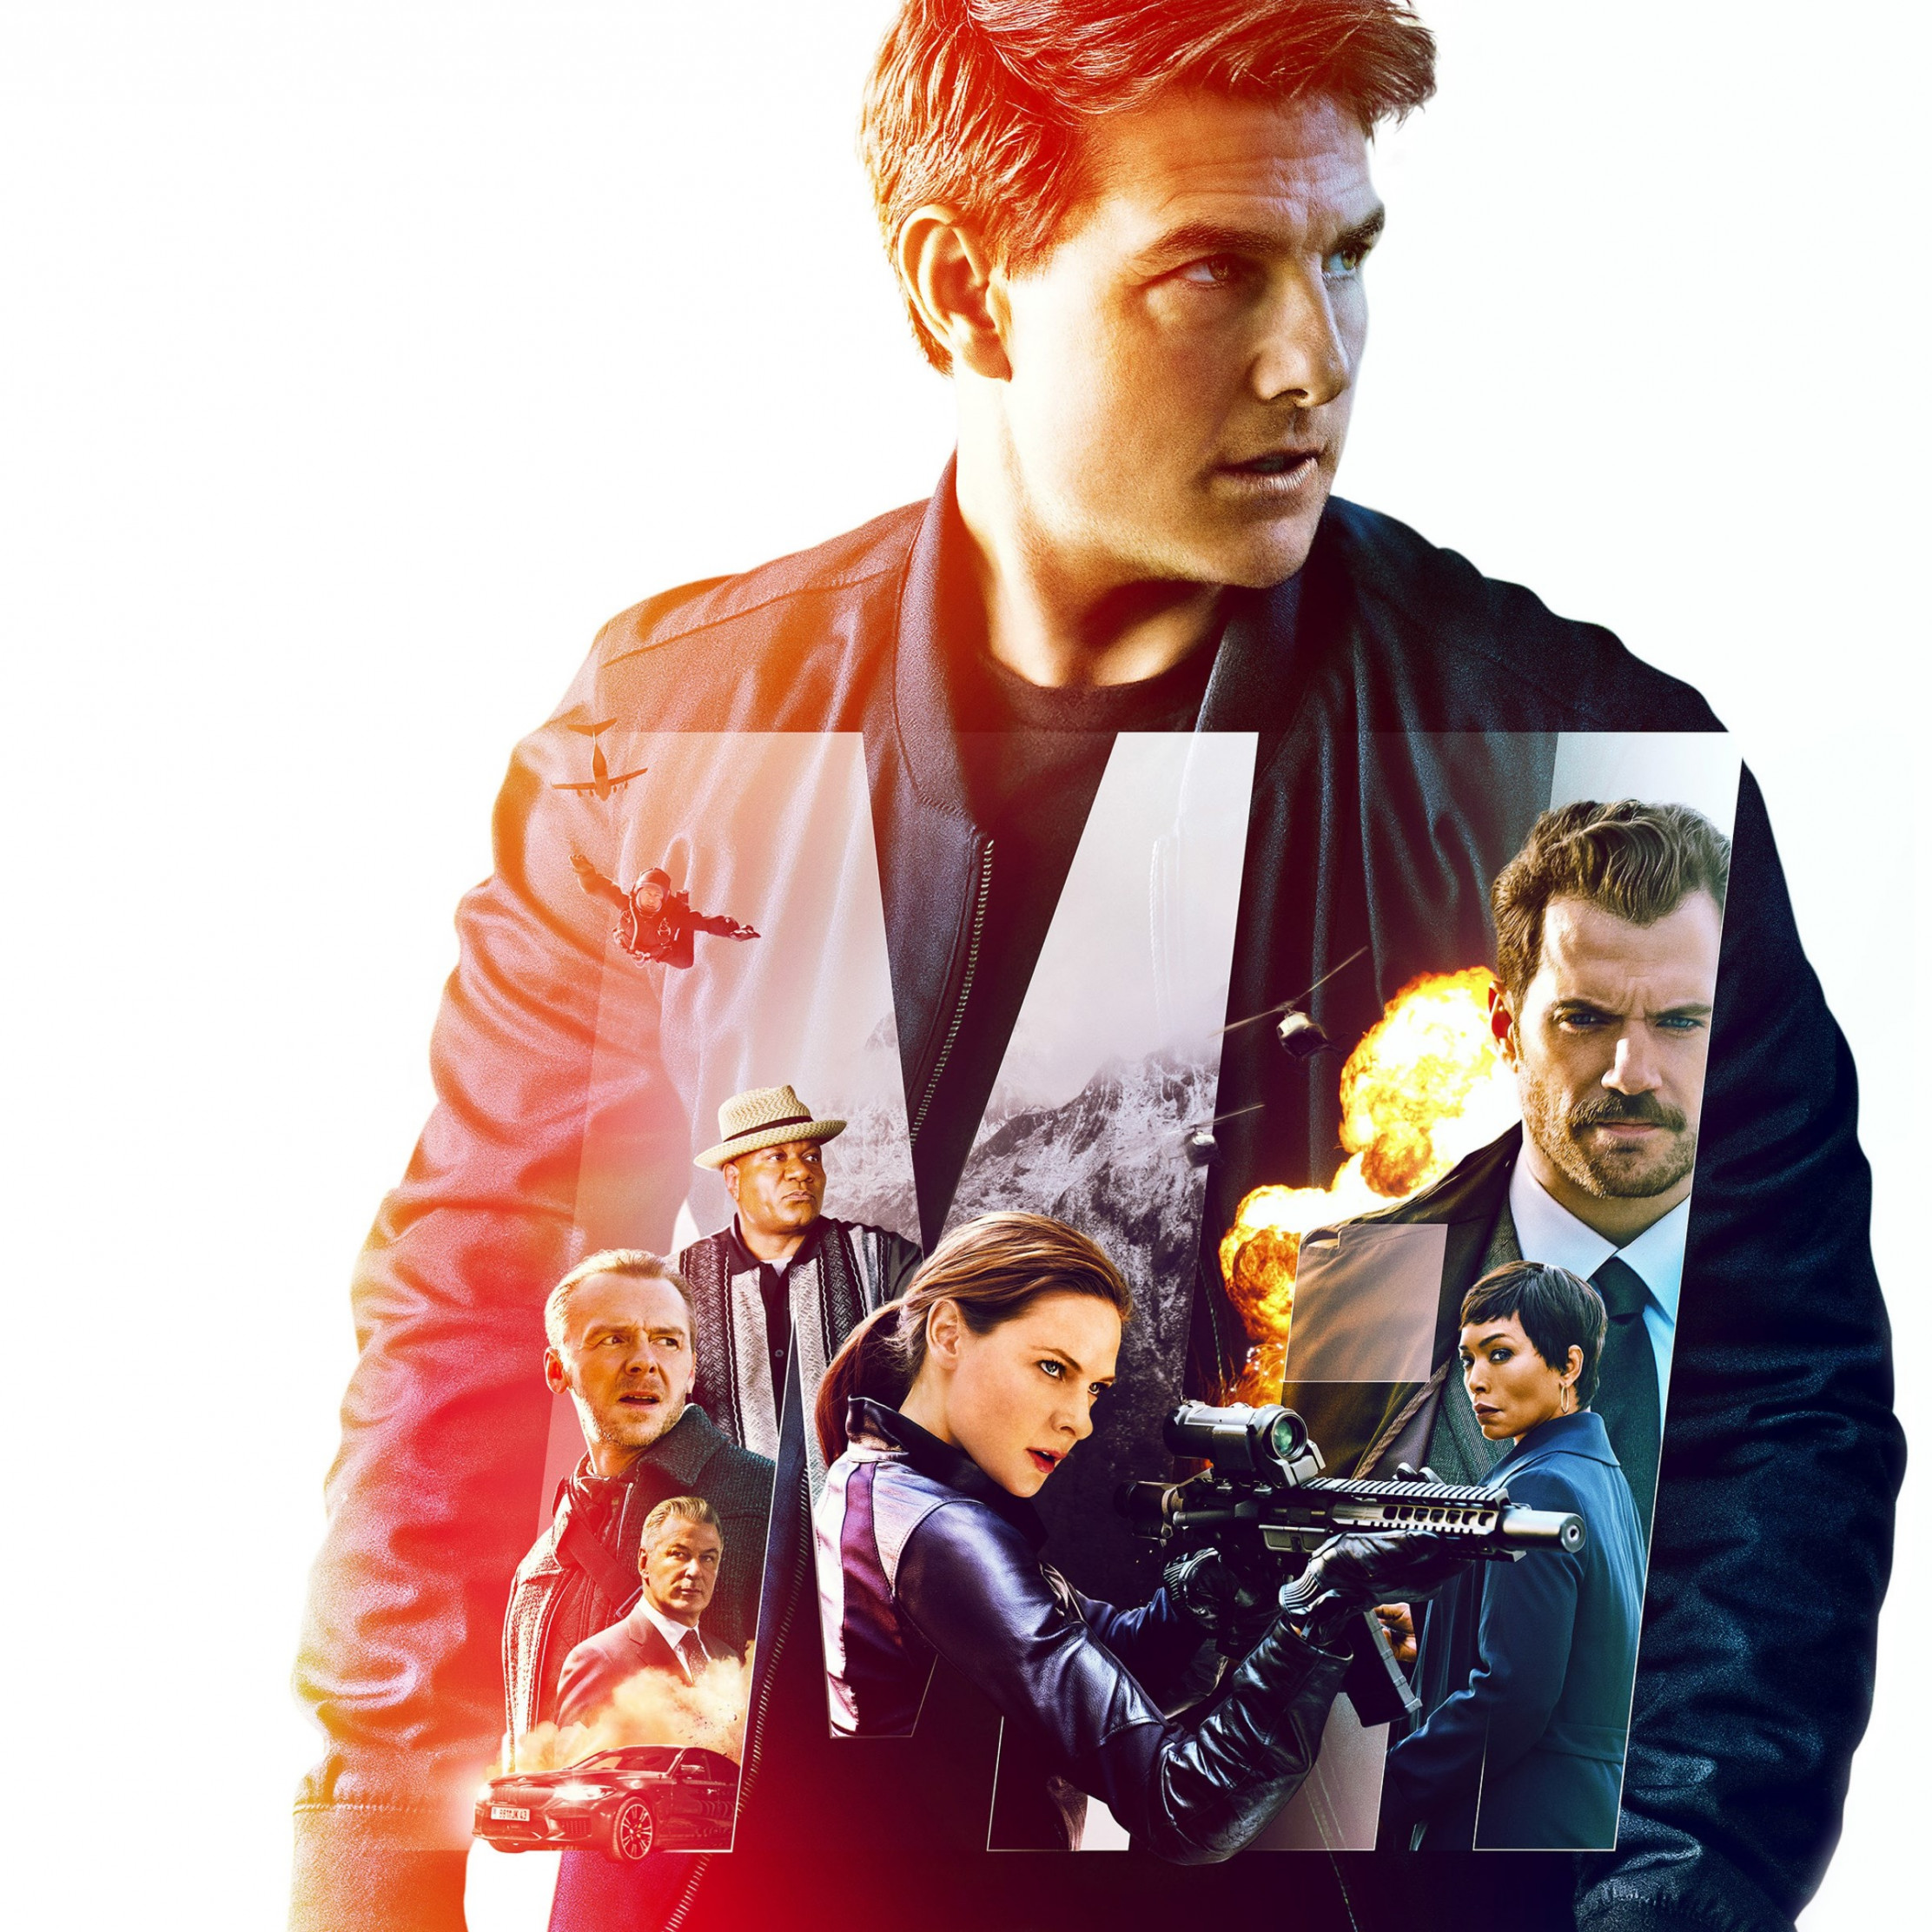 Mission: Impossible Fallout | 2224x2224 wallpaper